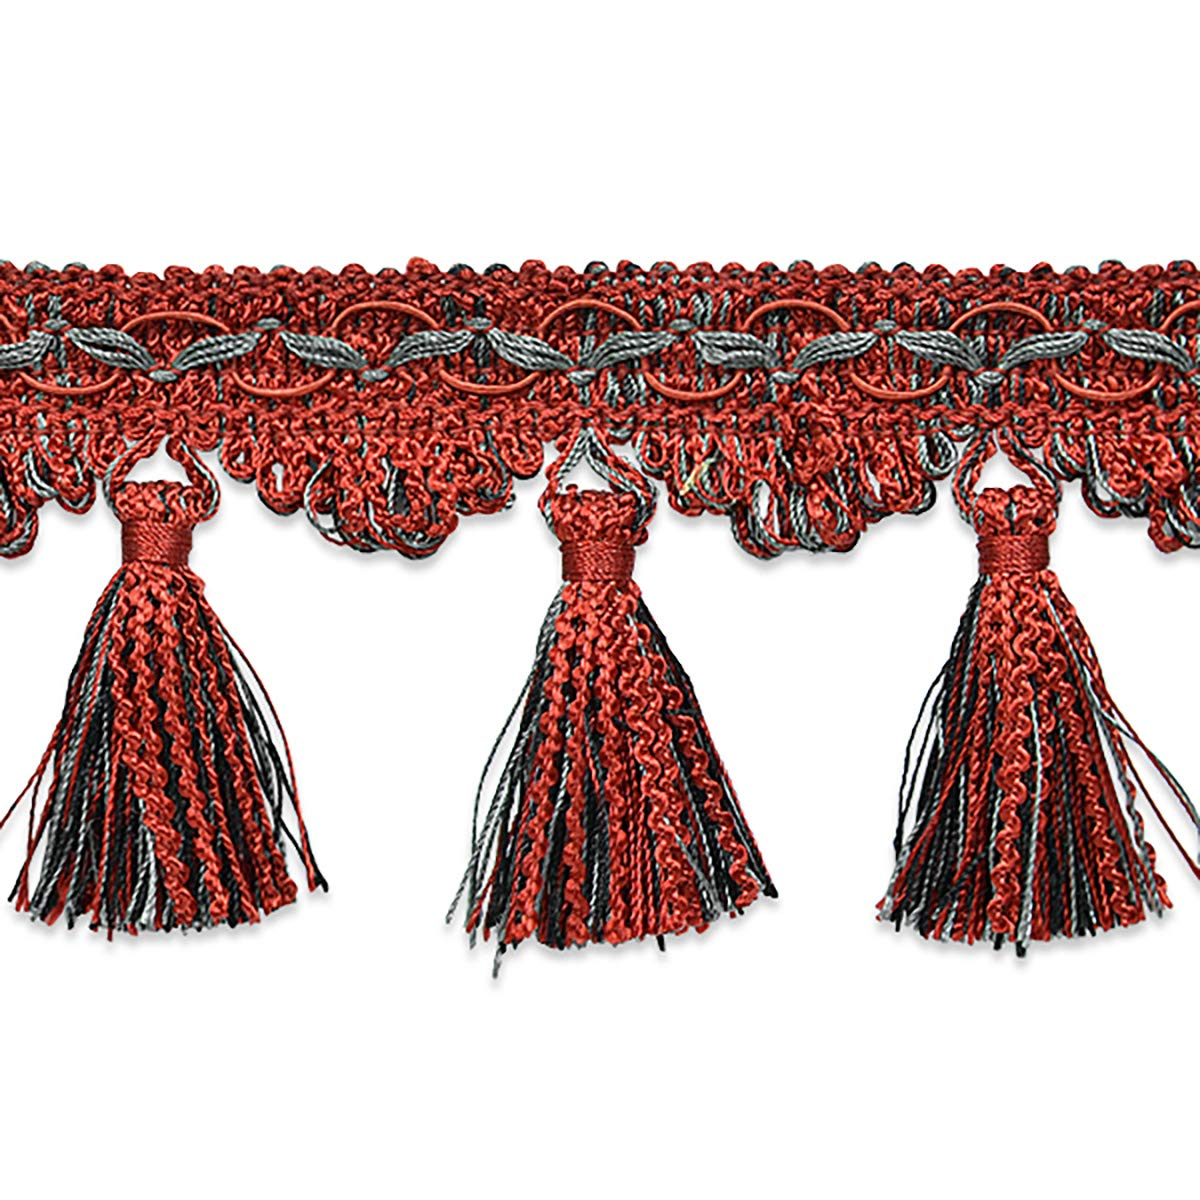 RIC Rac Tassel Trim Red Multi (Precut 20 Yard) by Expo International Inc.